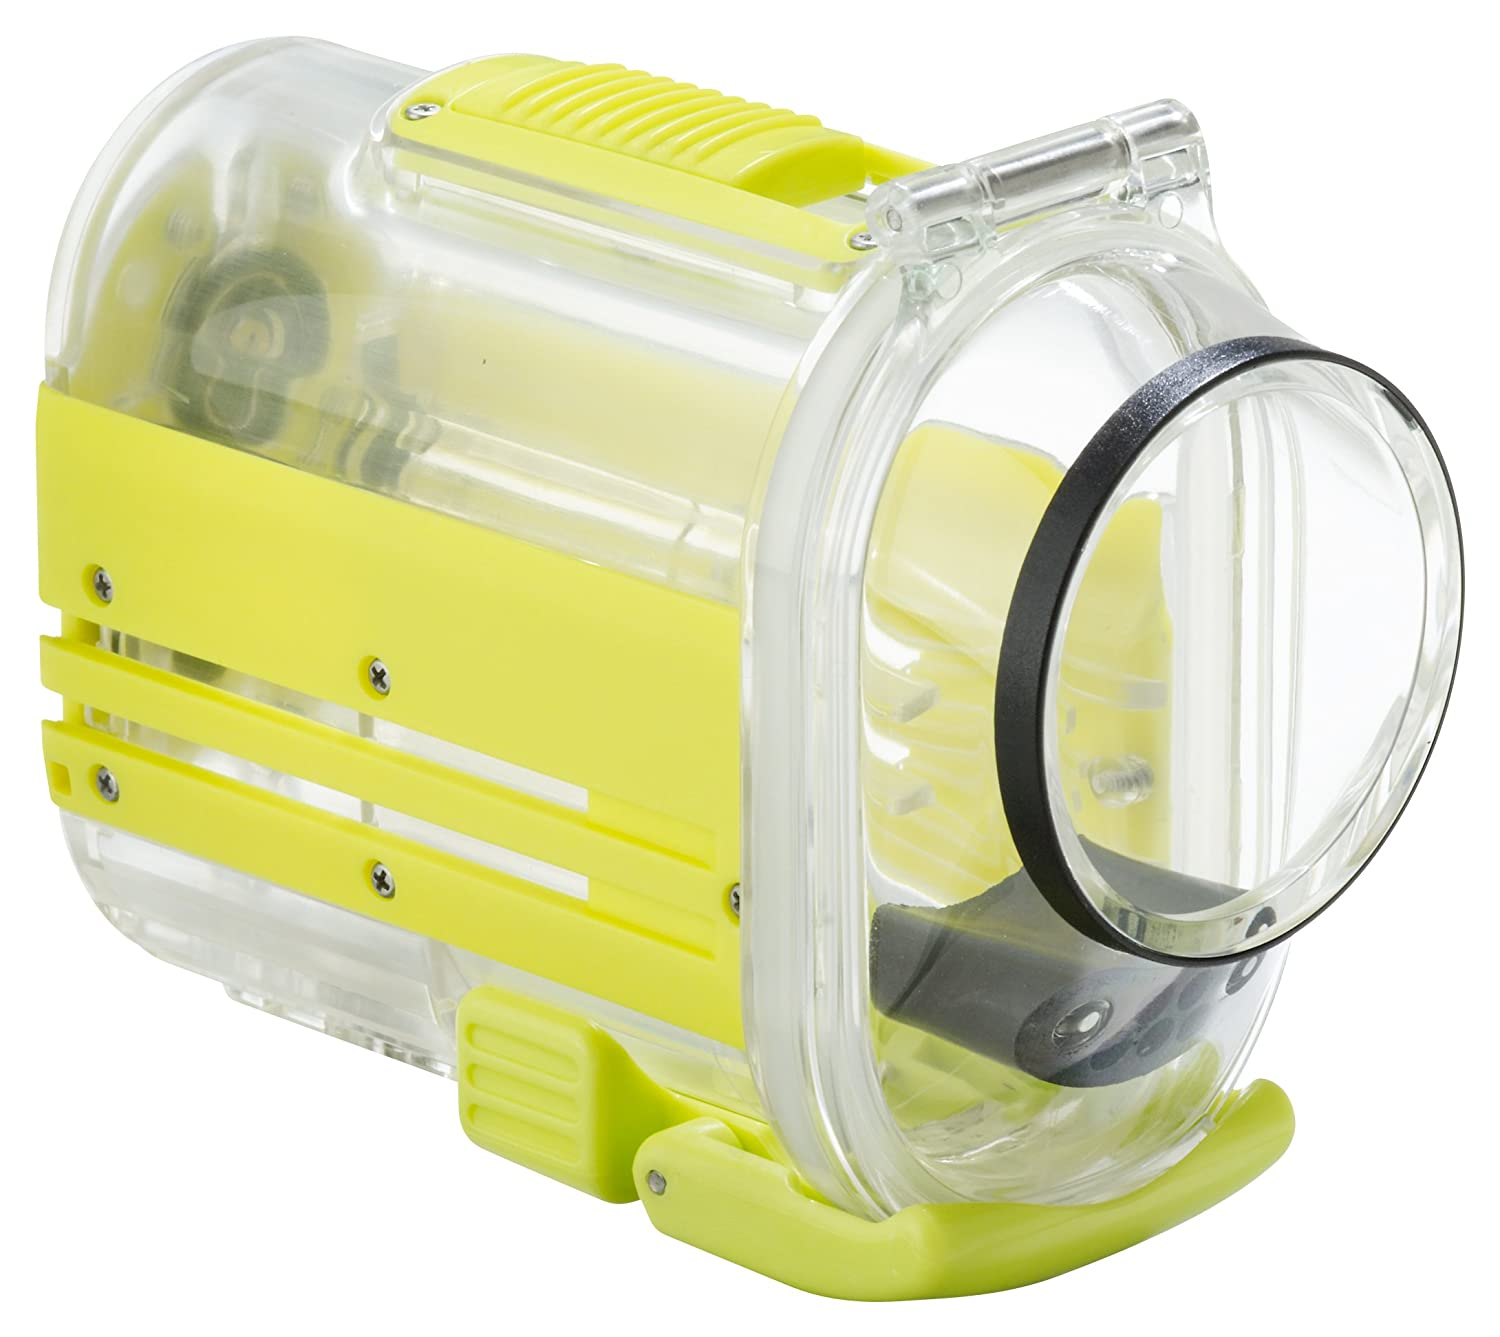 CONTOUR Waterproof Case For C+ Green